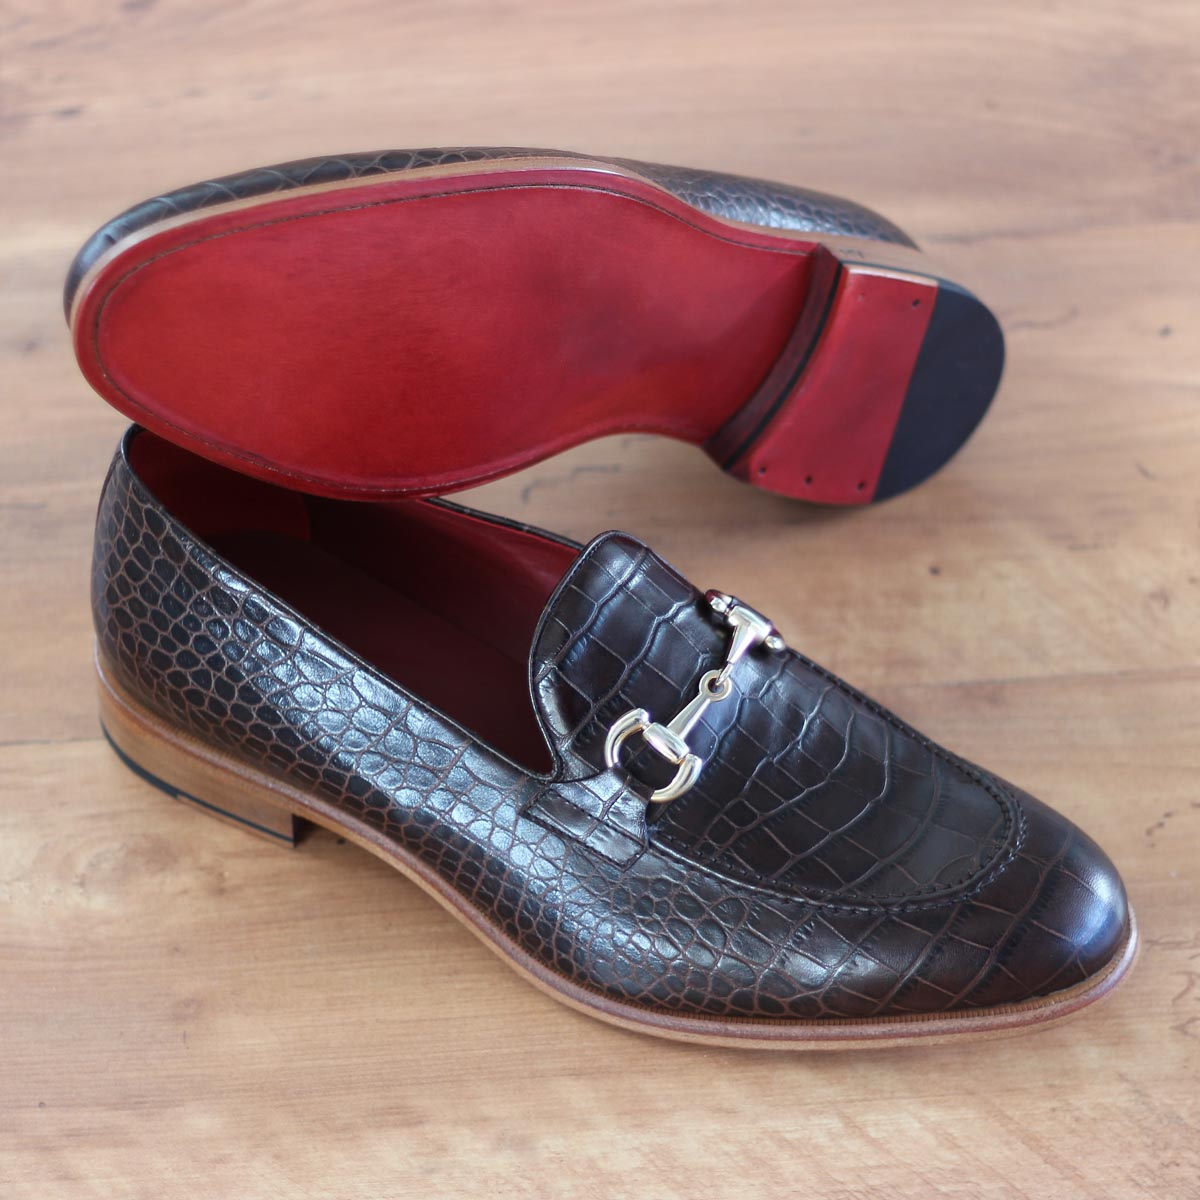 Loafer croco brown + burgundy box calf + cognac box calf : 240€